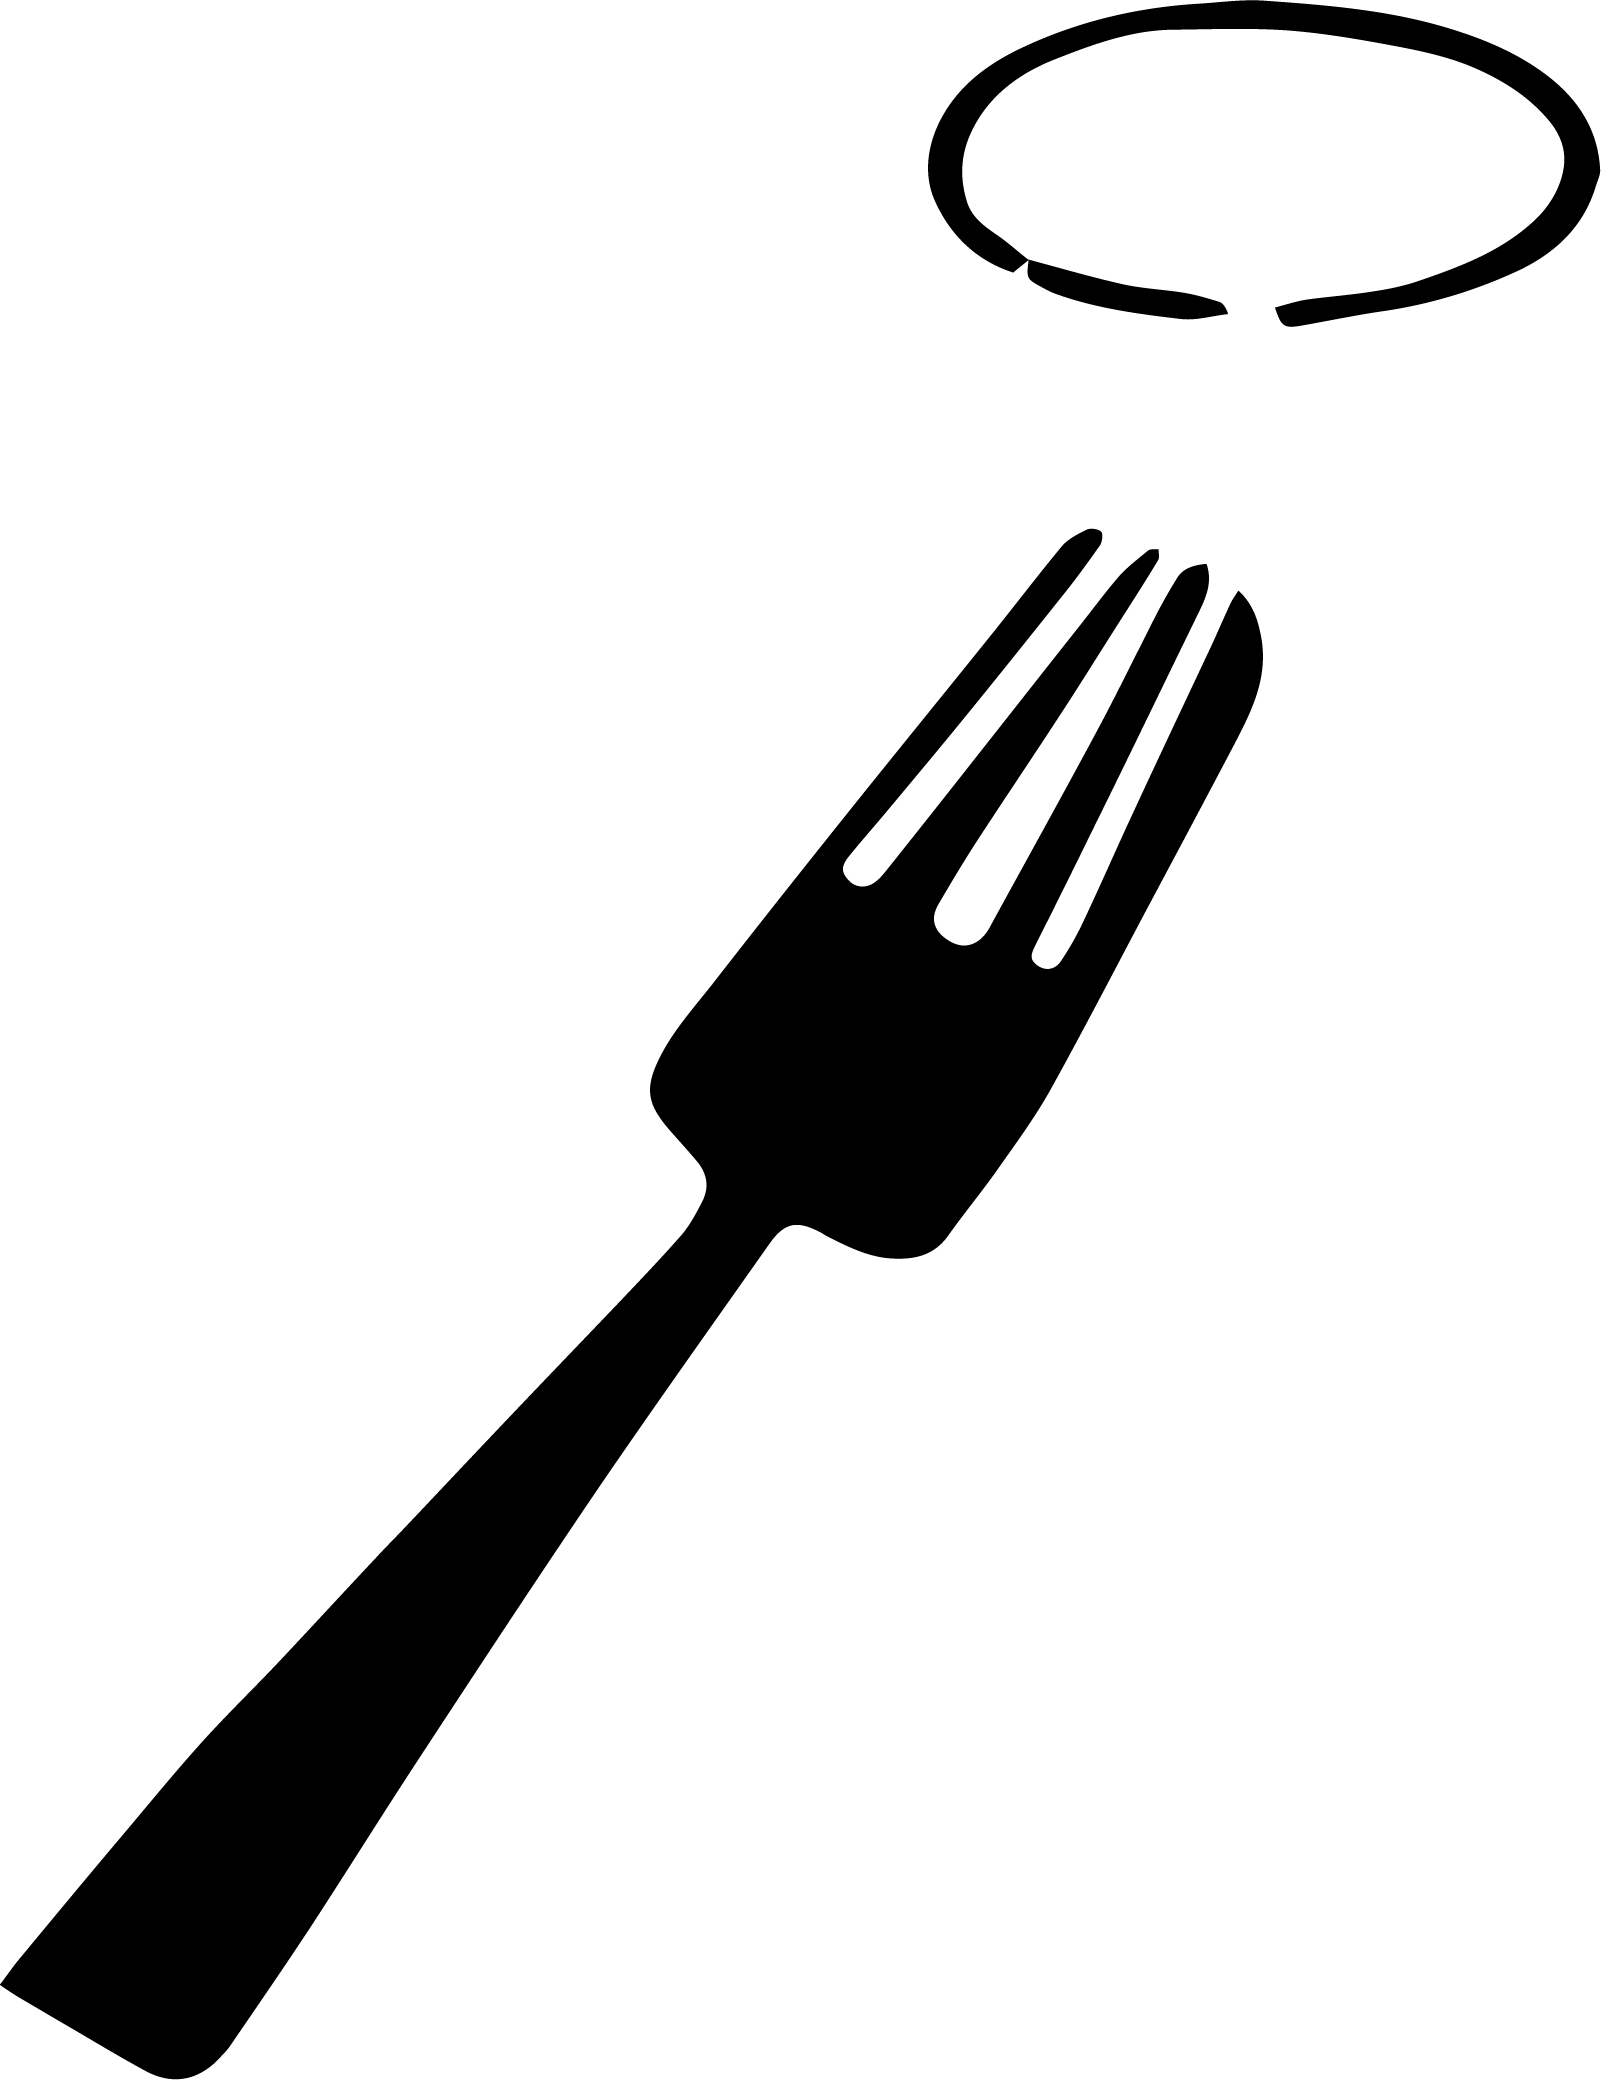 Catering clipart knife fork. Dinner the good